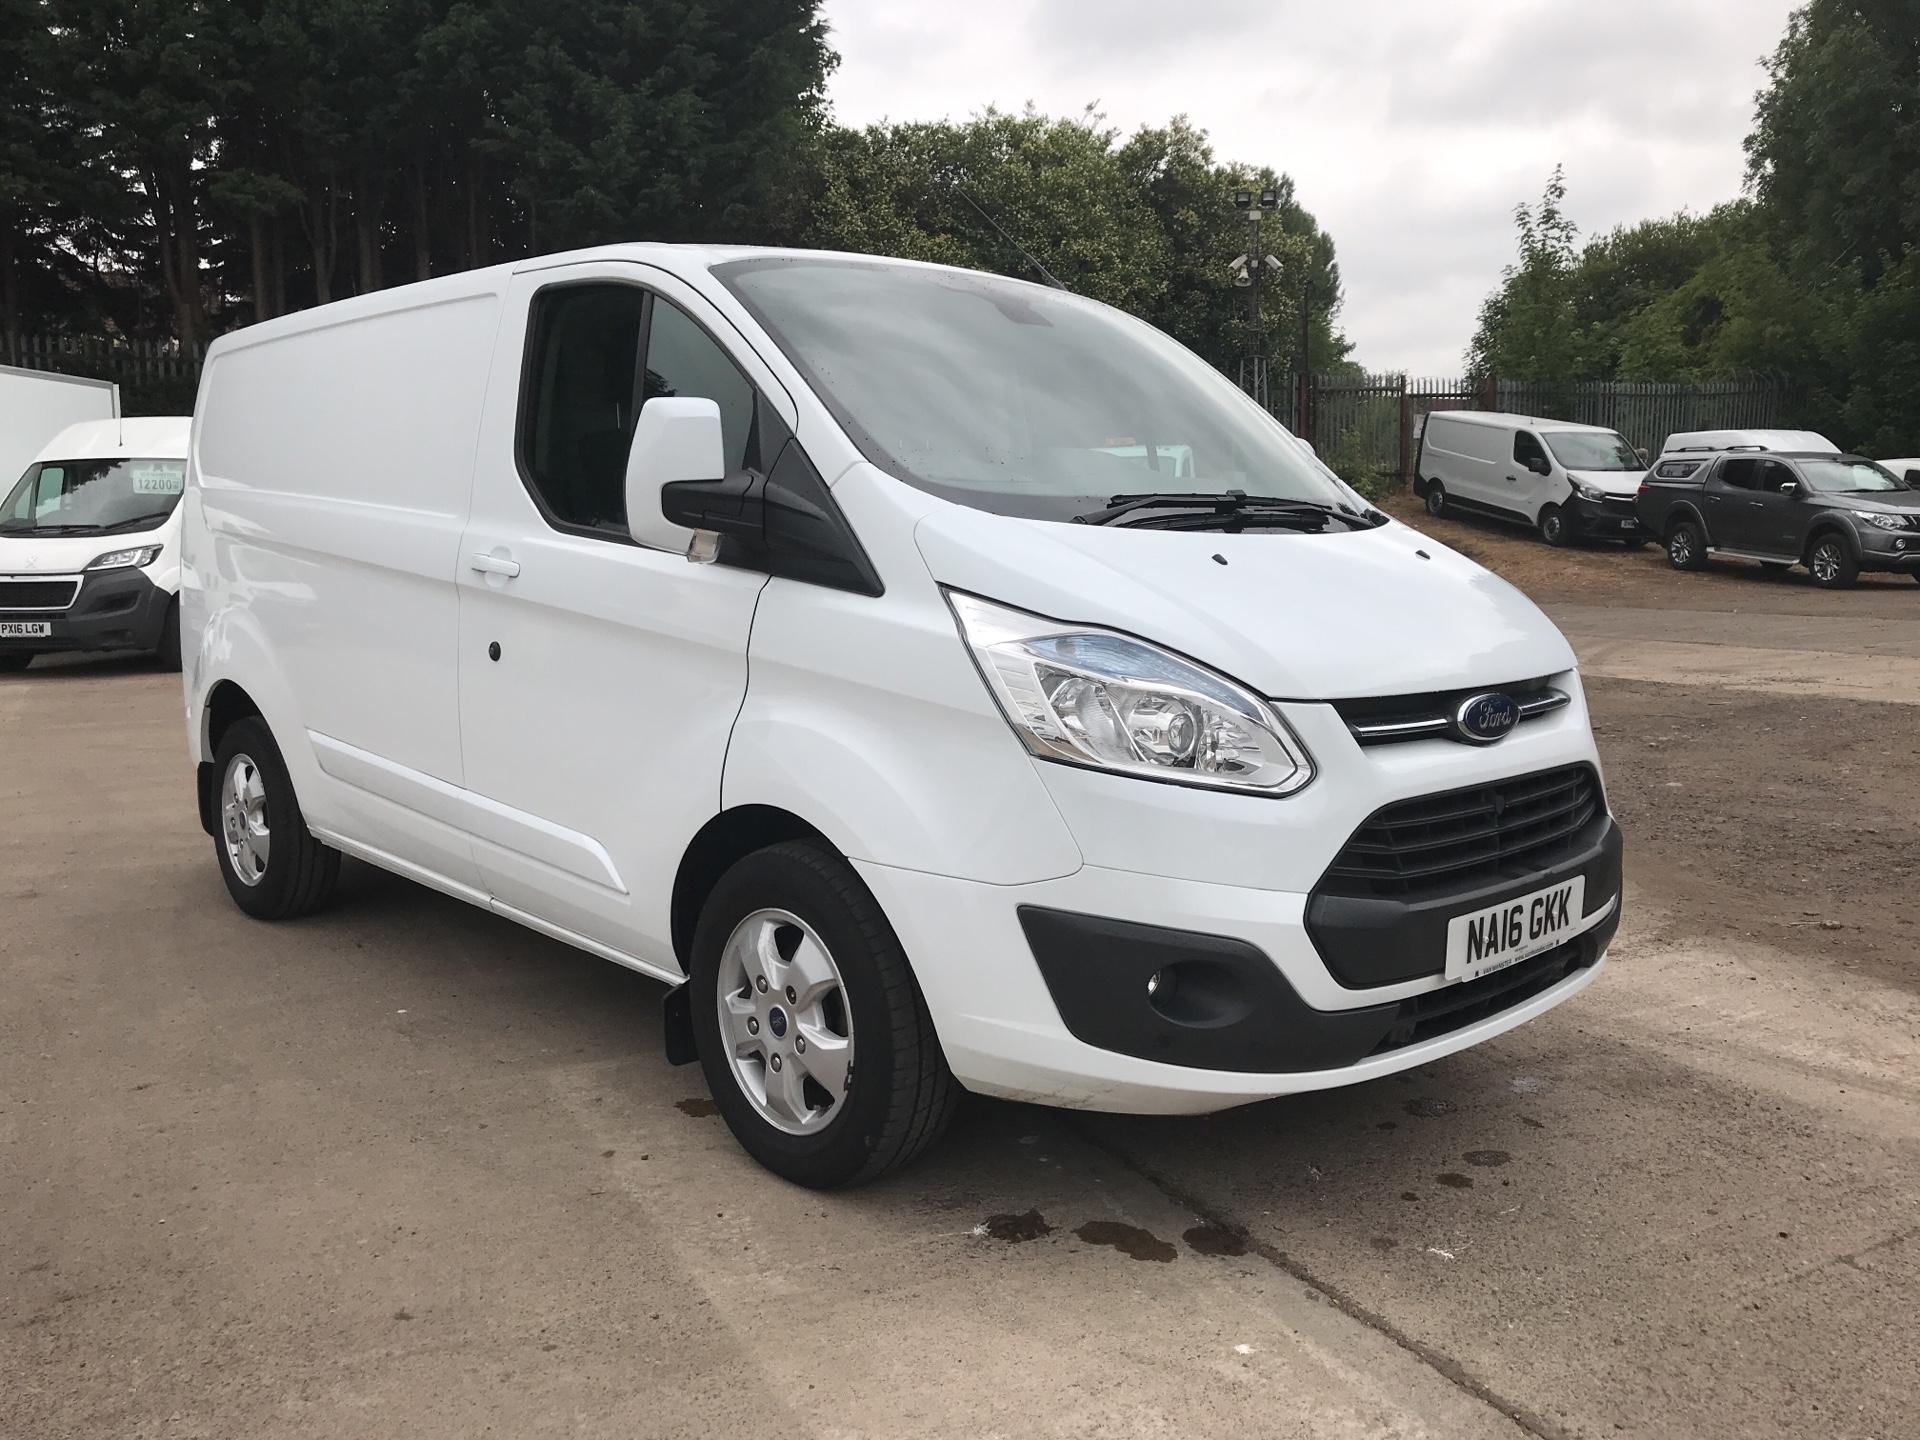 2016 Ford Transit Custom 270 L1 DIESEL FWD 2.2  TDCI 125PS LOW ROOF LIMITED VAN EURO 5